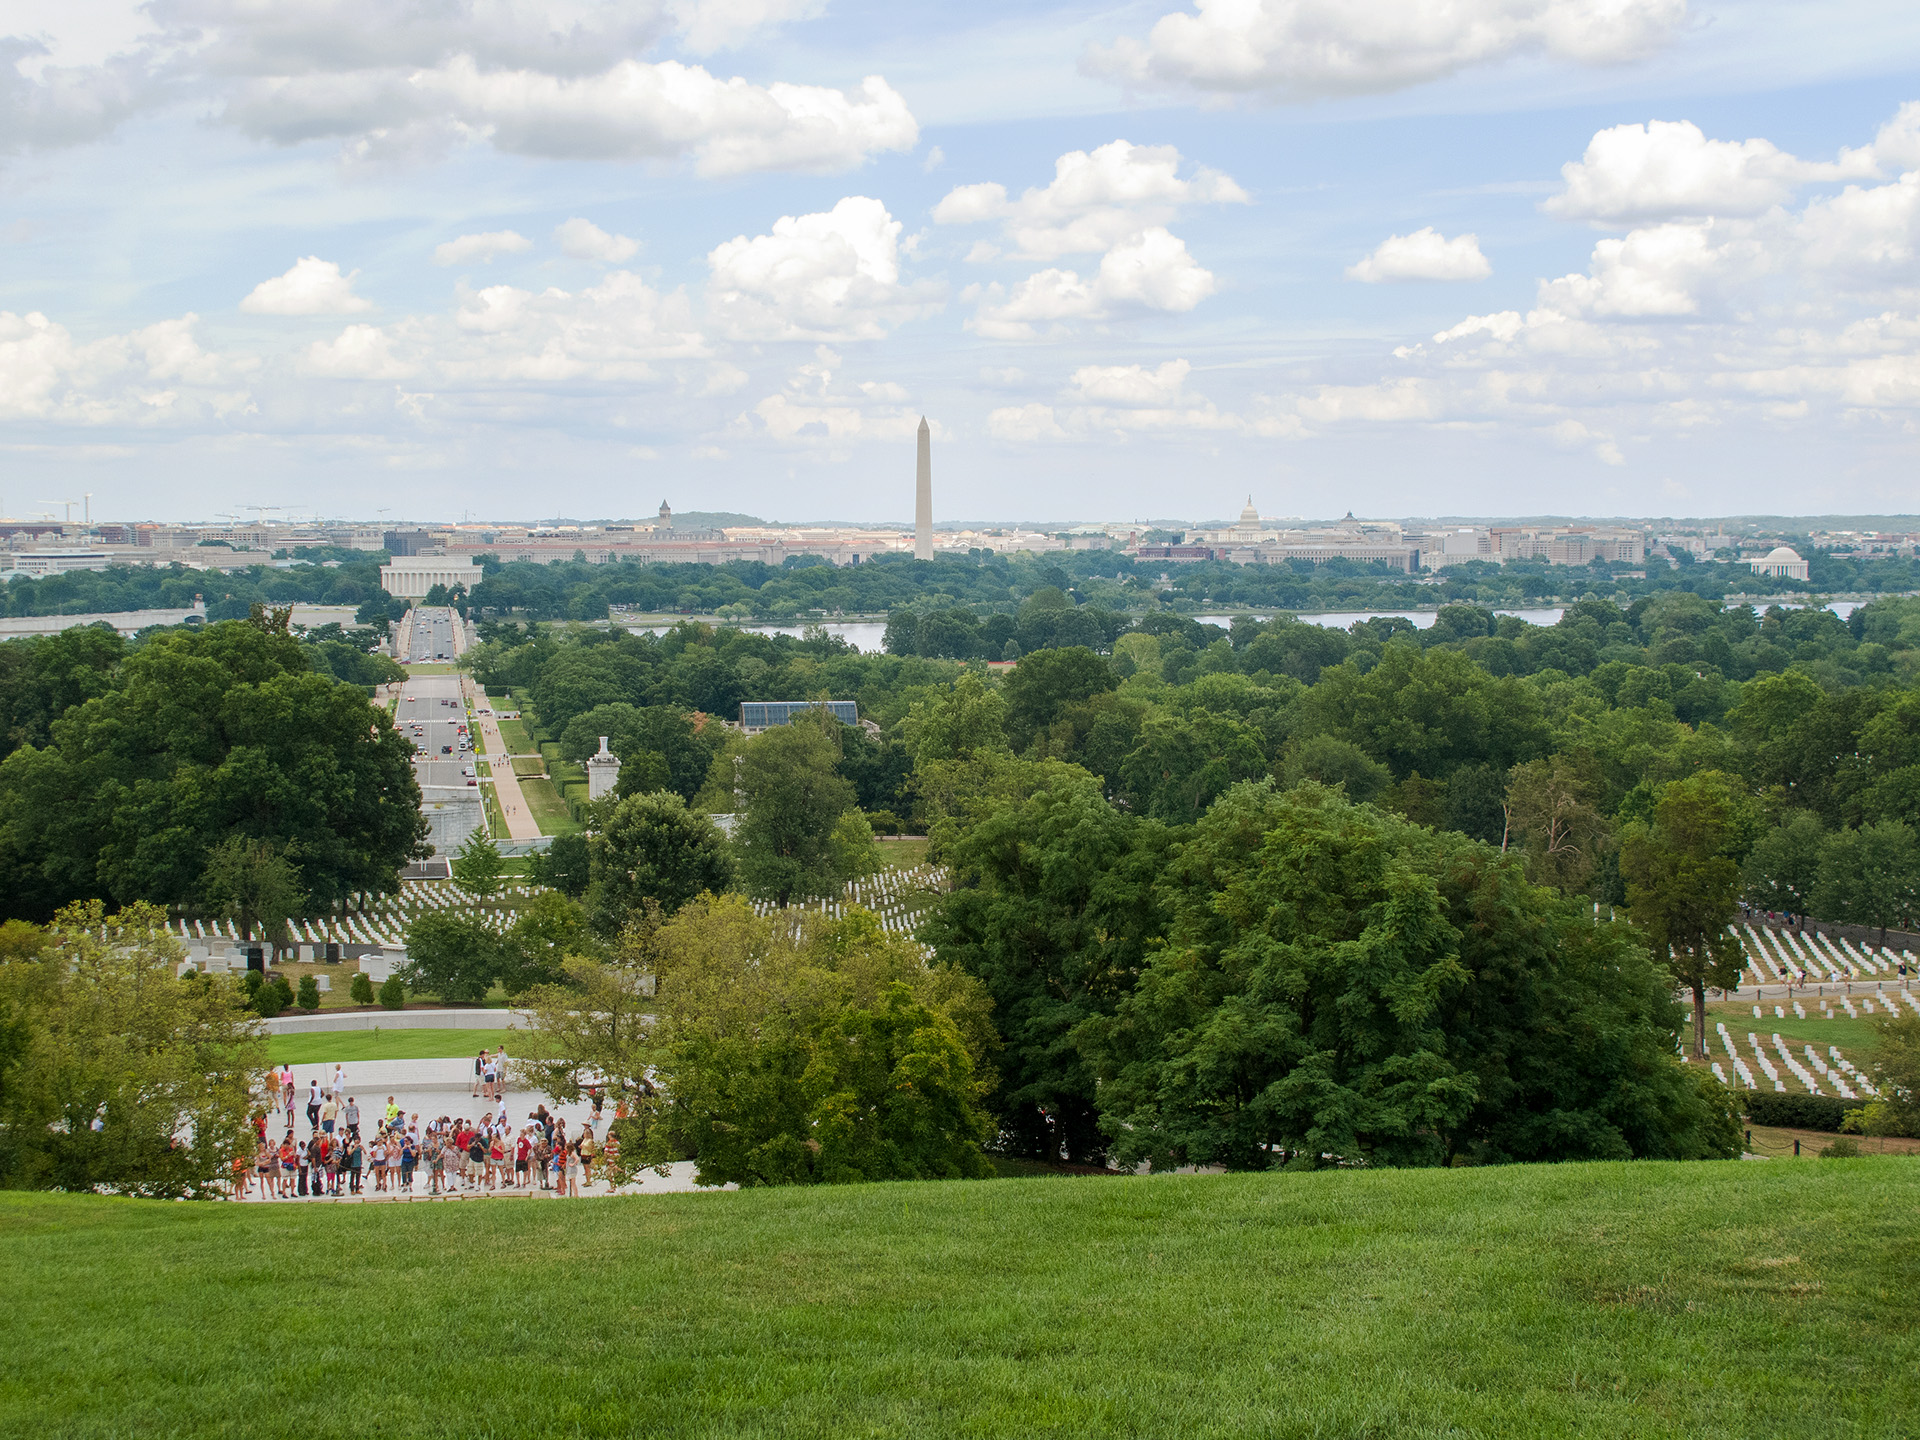 View of Arlington National Cemetery from Arlington House.